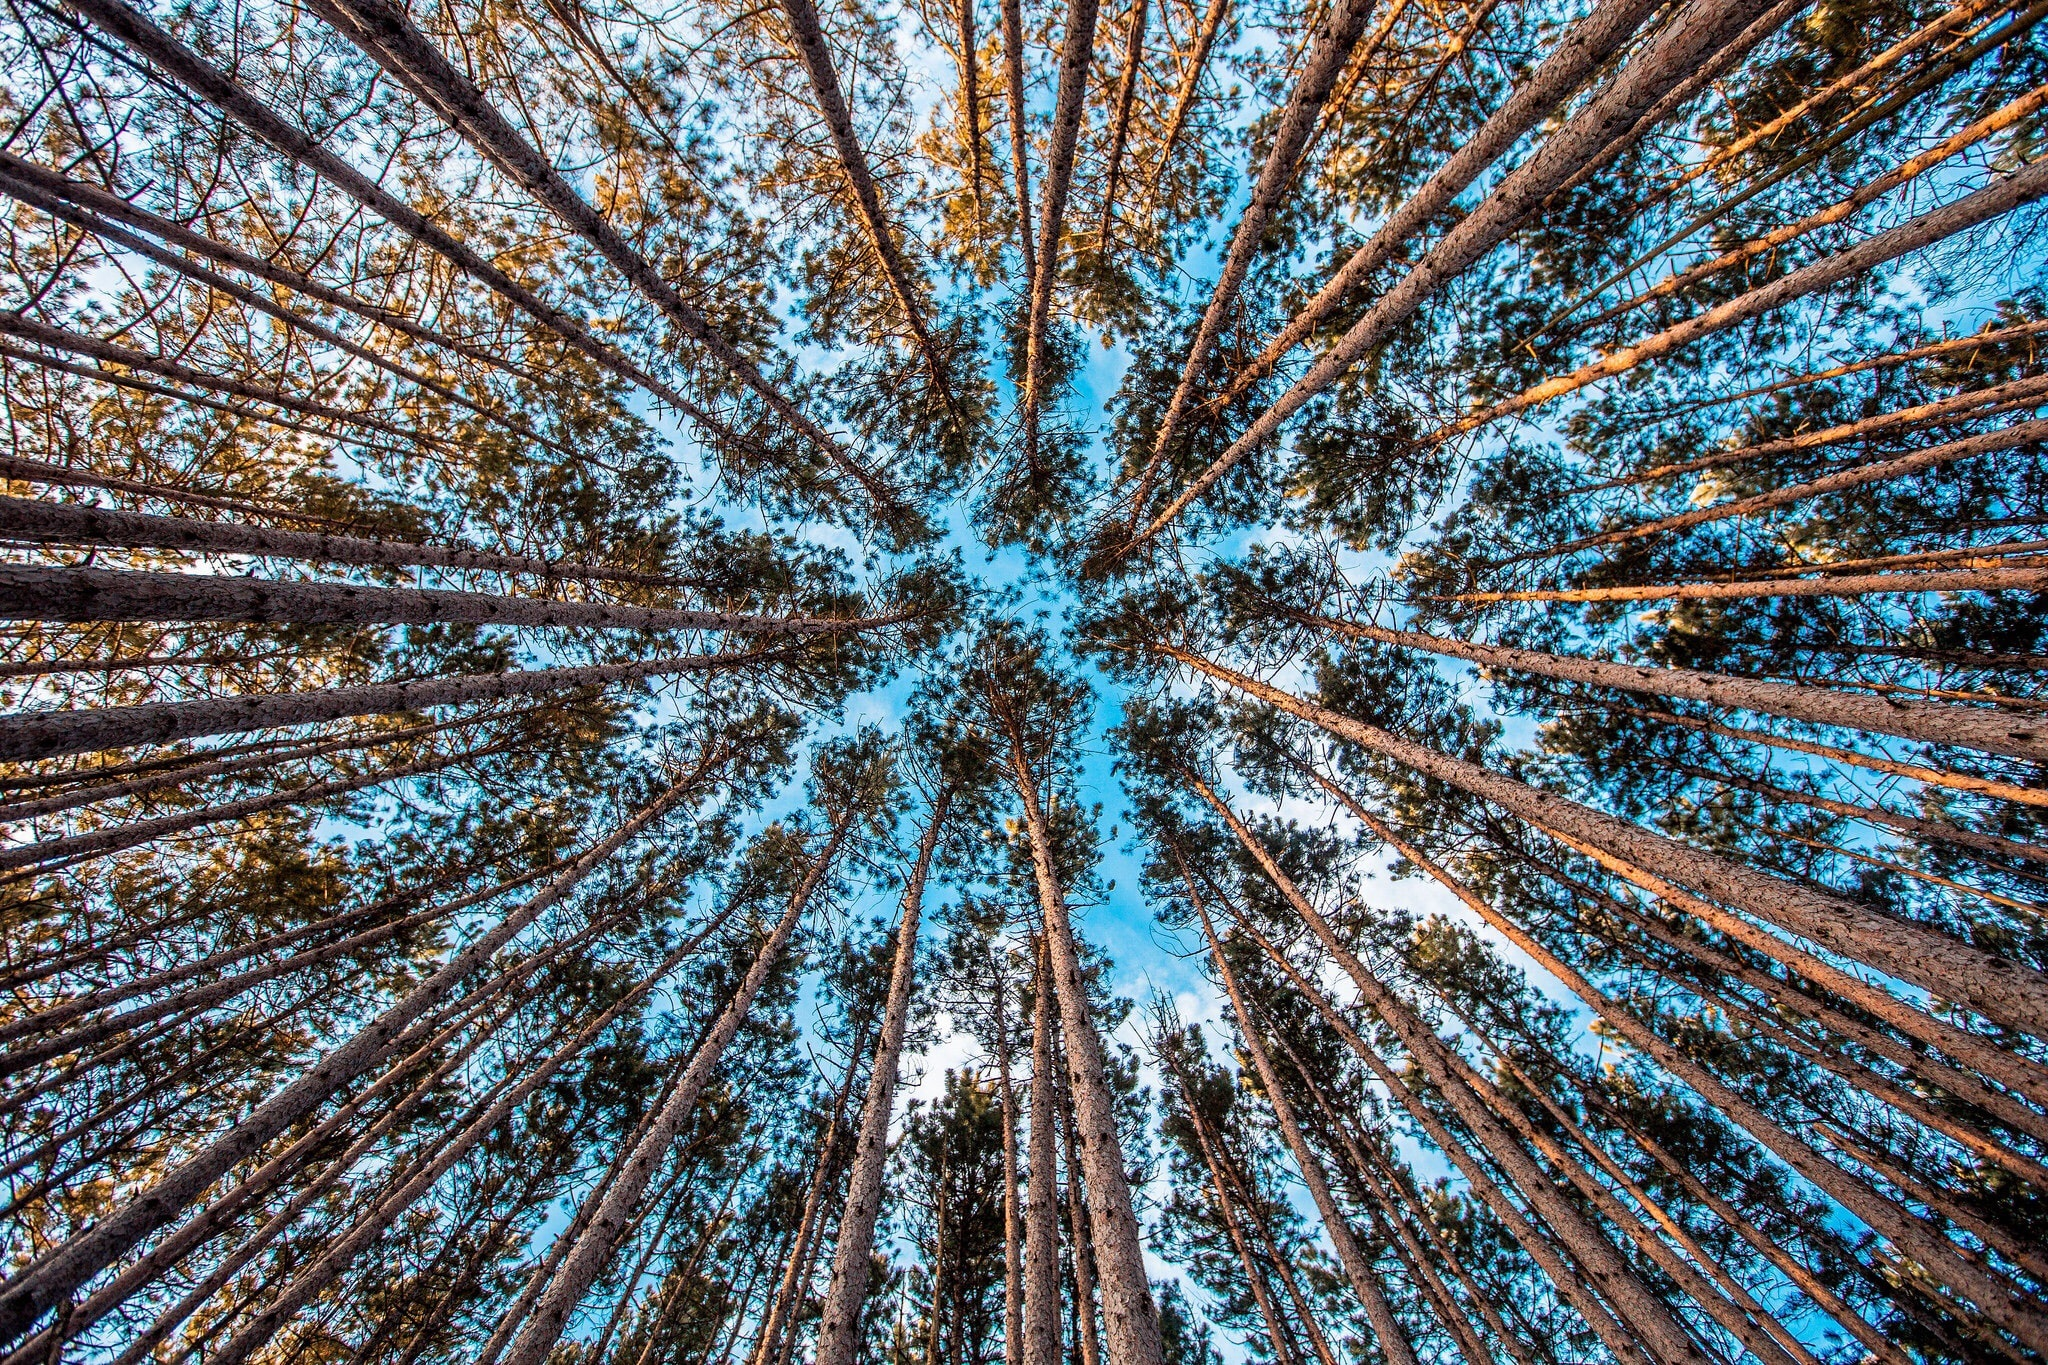 A low-angle shot of a tree canopy against a blue sky